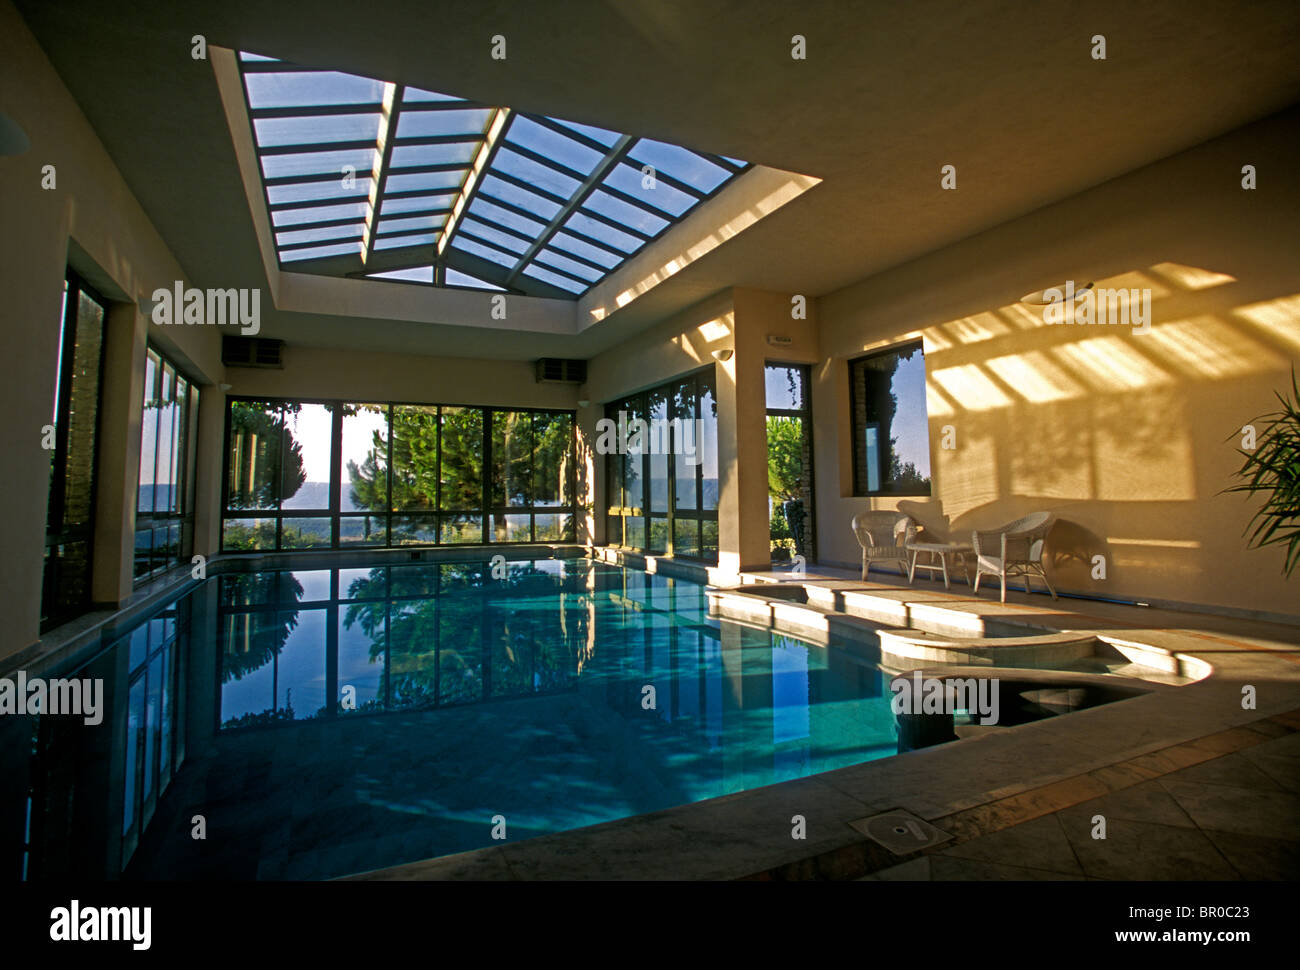 Indoor Heated Swimming Pool, Indoor Swimming Pool, Heated Swimming Pool, Swimming  Pool, Hotel Les Bories, Village Of Gordes, Provence, France, Europe